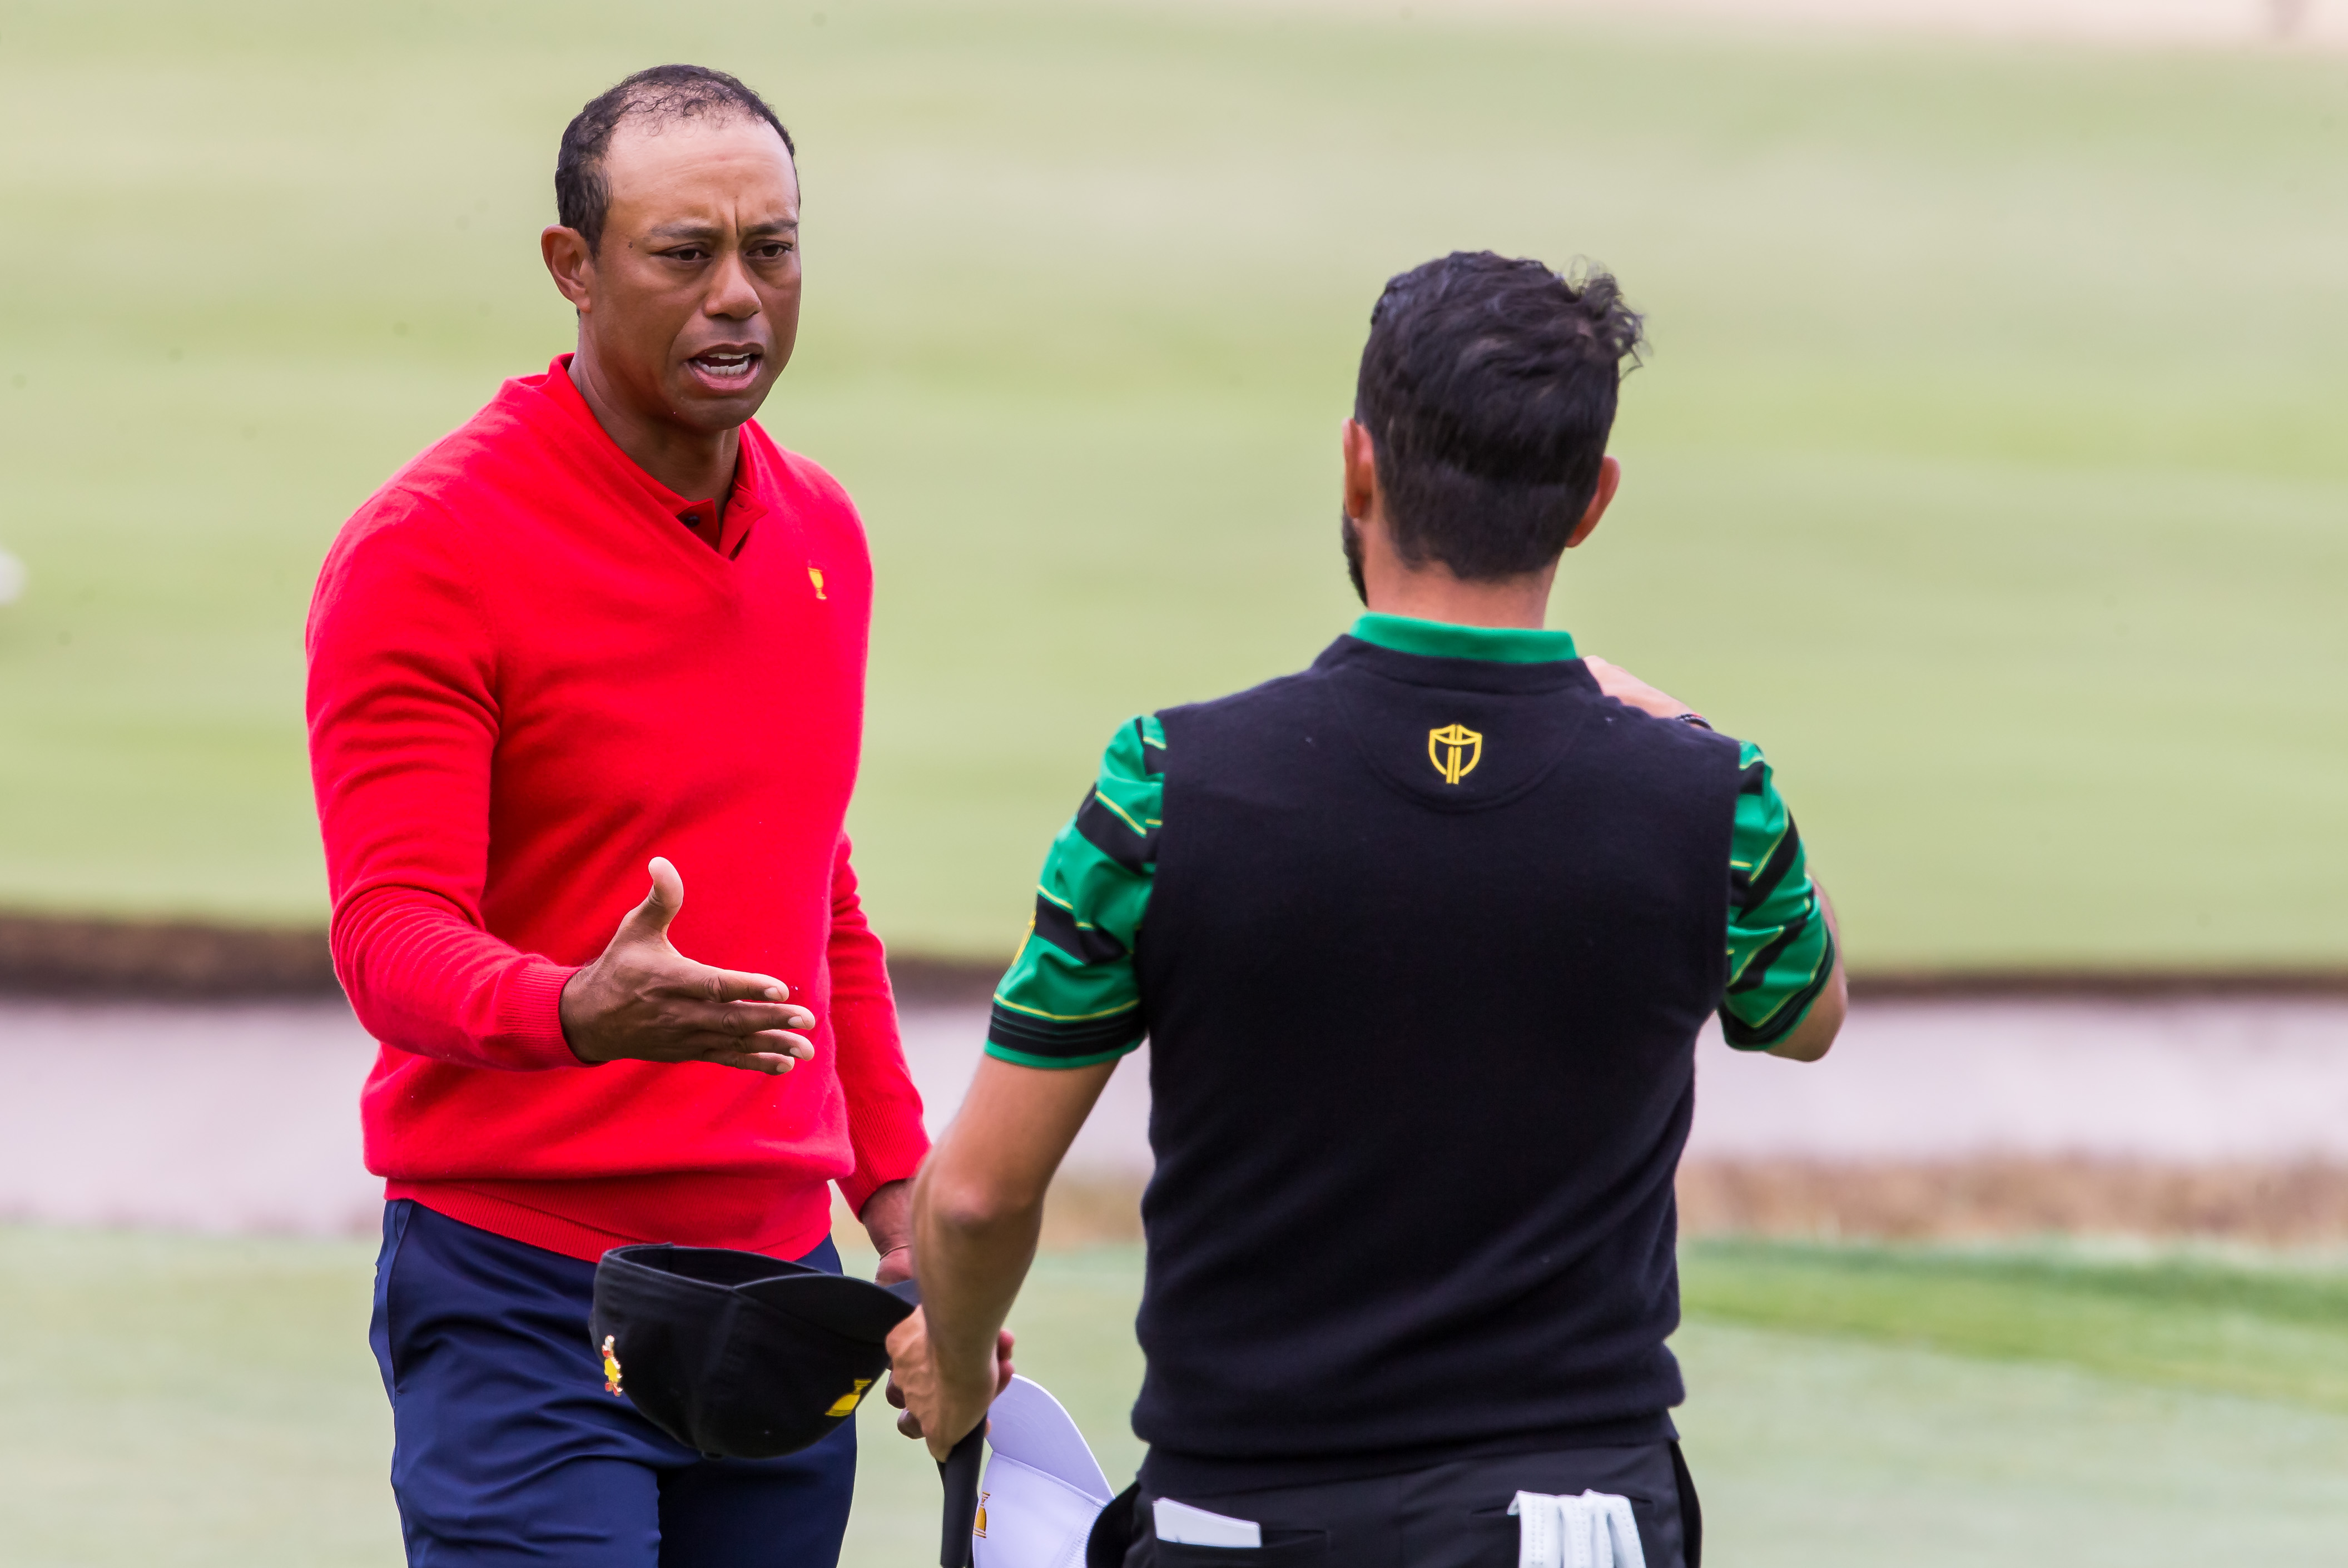 Presidents Cup 2019: Tiger Woods pulls all-time boss move by removing hat  as his winning putt dropped | Golf News and Tour Information